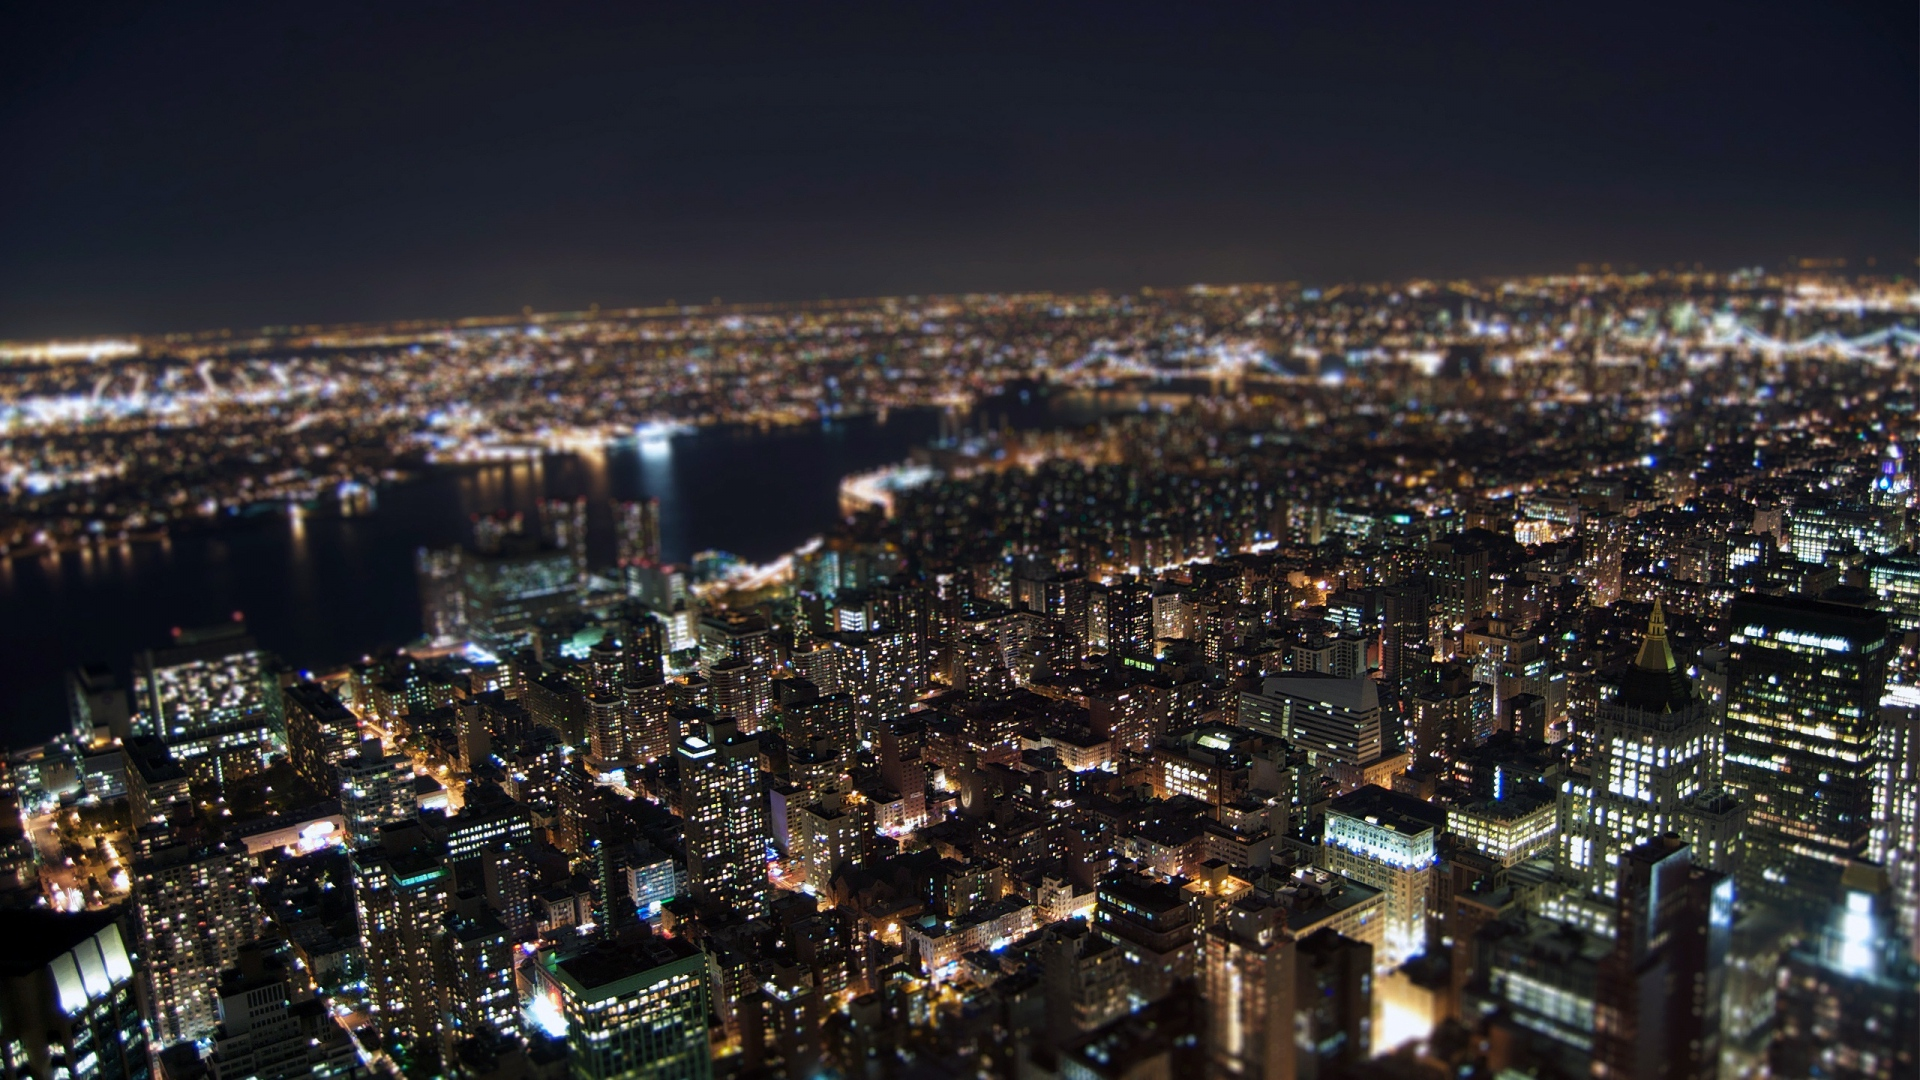 Download Wallpaper 1920x1080 Night New York Lights Top View Full Hd 1080p Hd Background